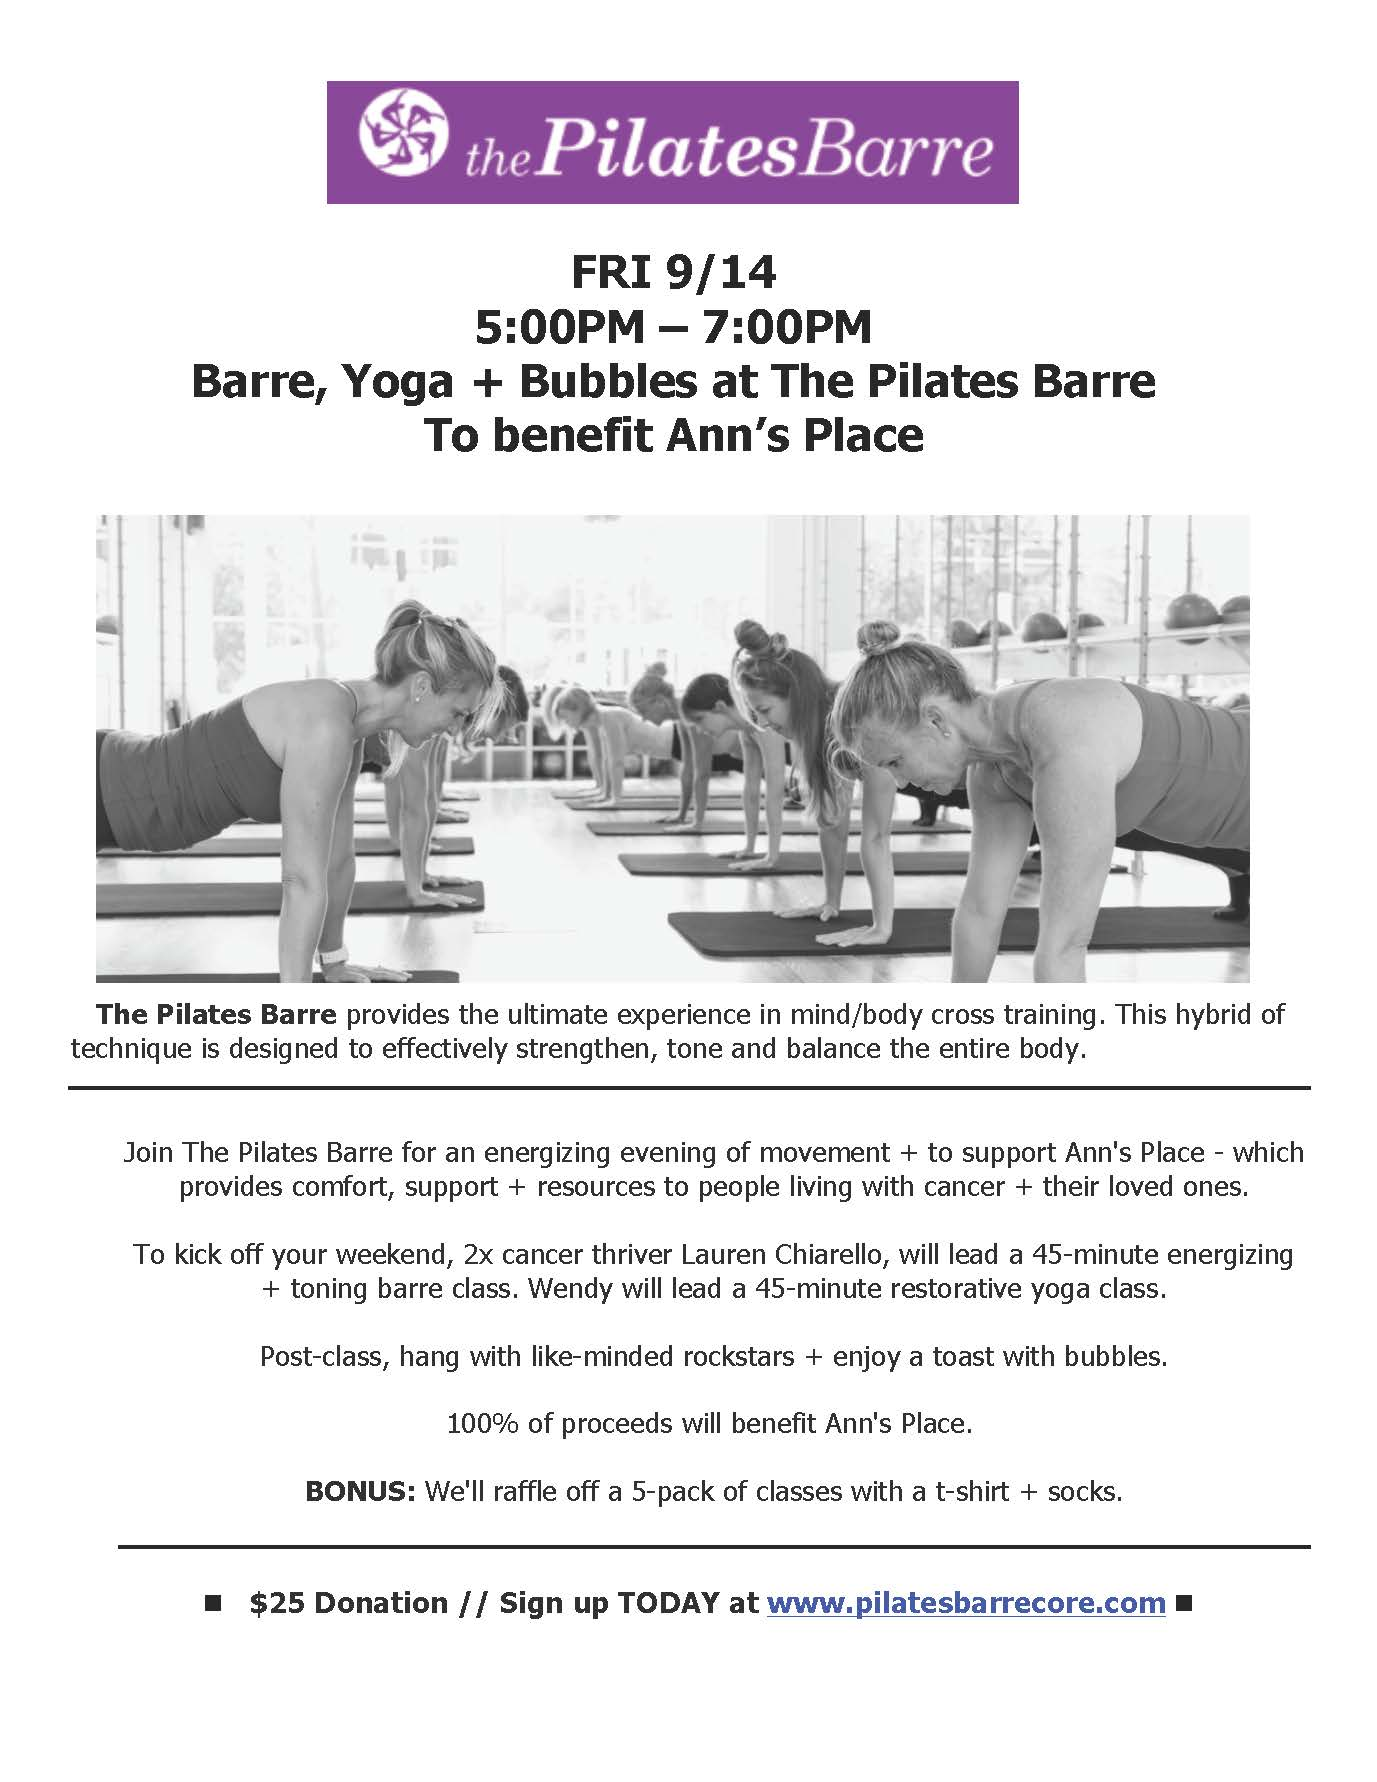 Anns Place x The Pilates Barre - Fundraiser 9.14.18.jpg